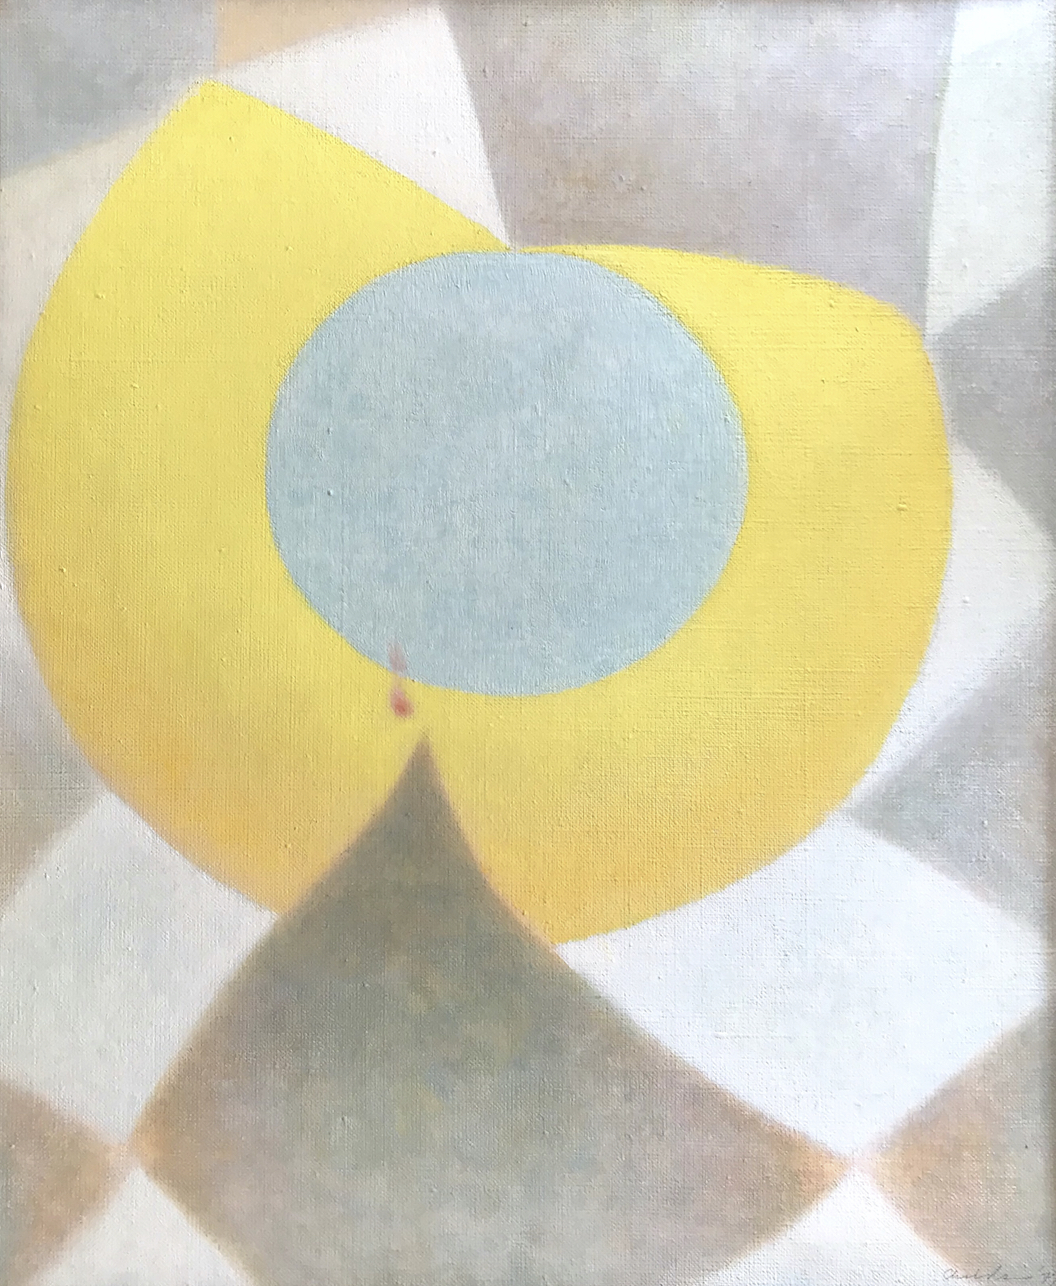 Spider's Web on a Rainy Day , 1977, Oil on linen, 18 1/8 x 15 inches